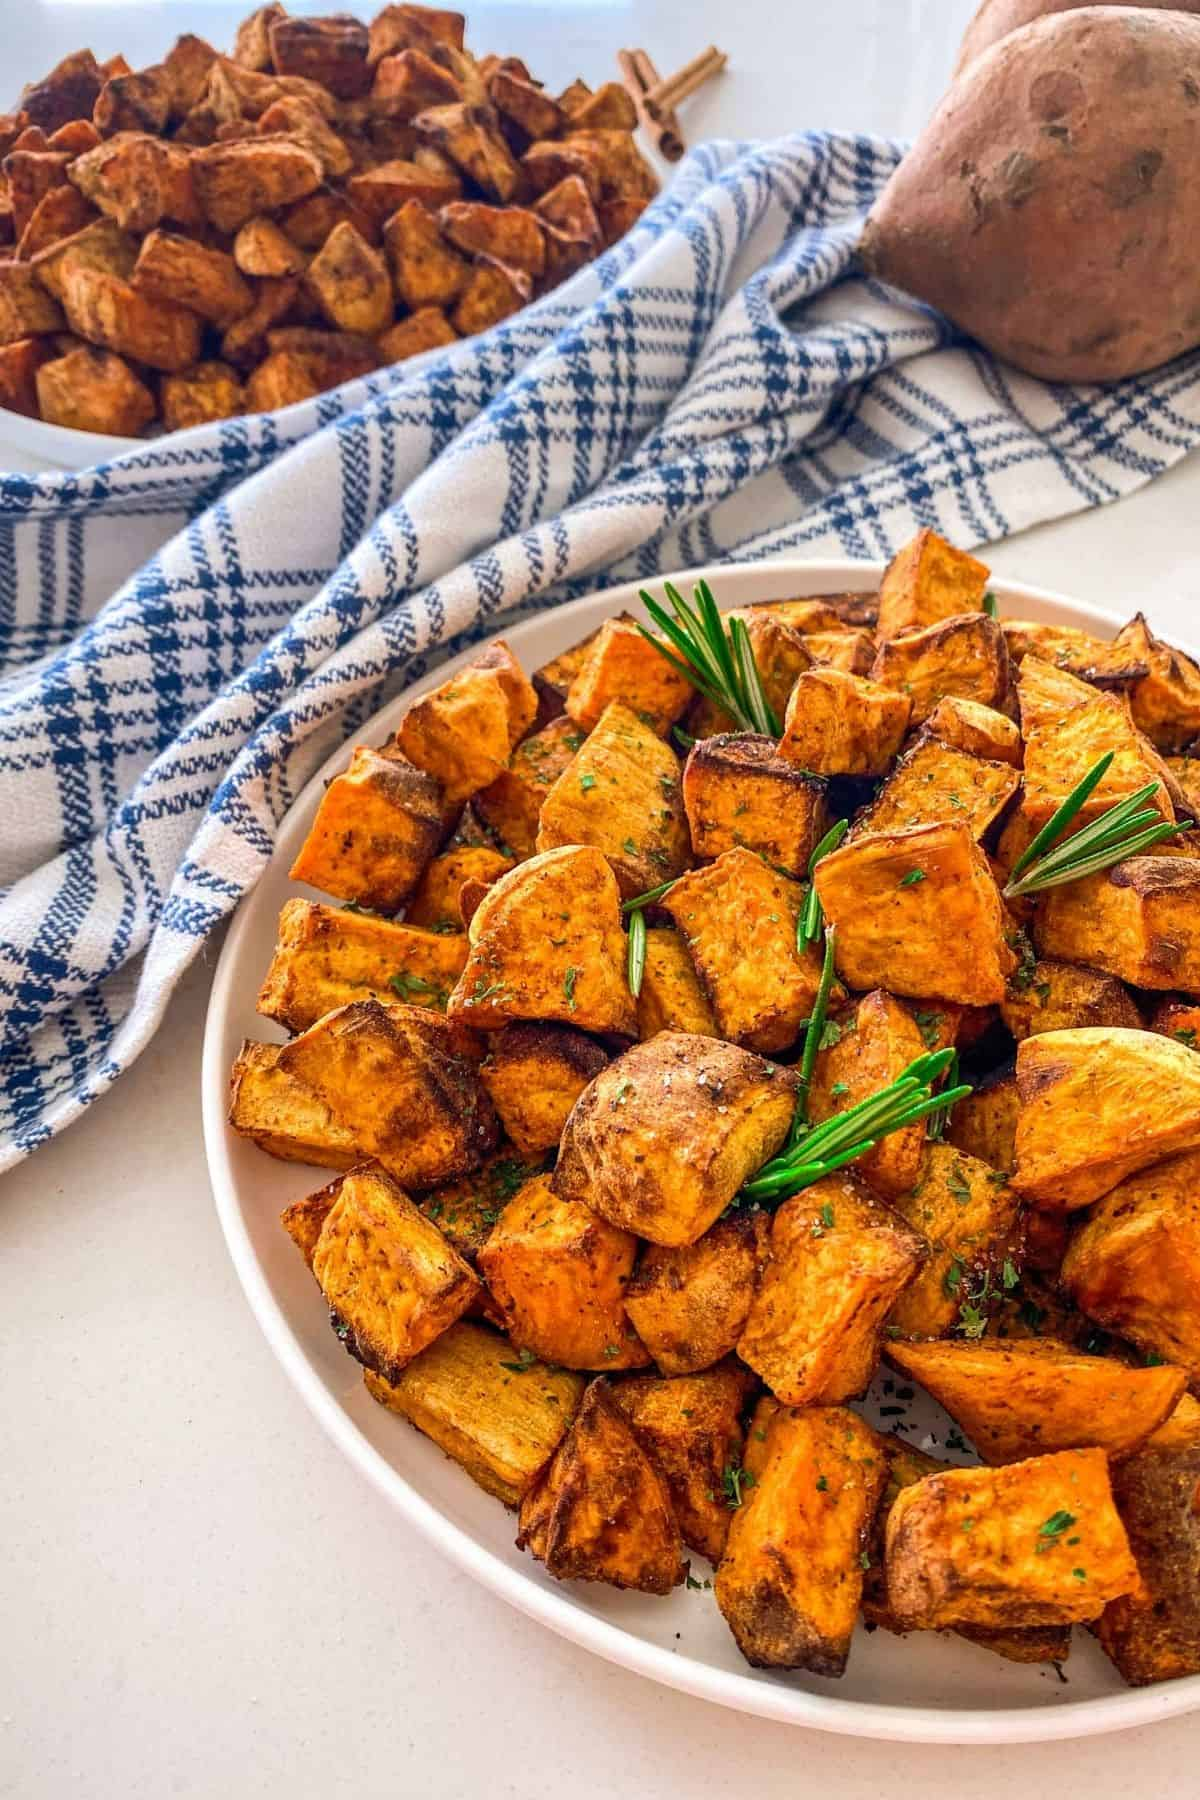 Side angle of cooked sweet potatoes in white plate with rosemary garnish and blue towel behind it.